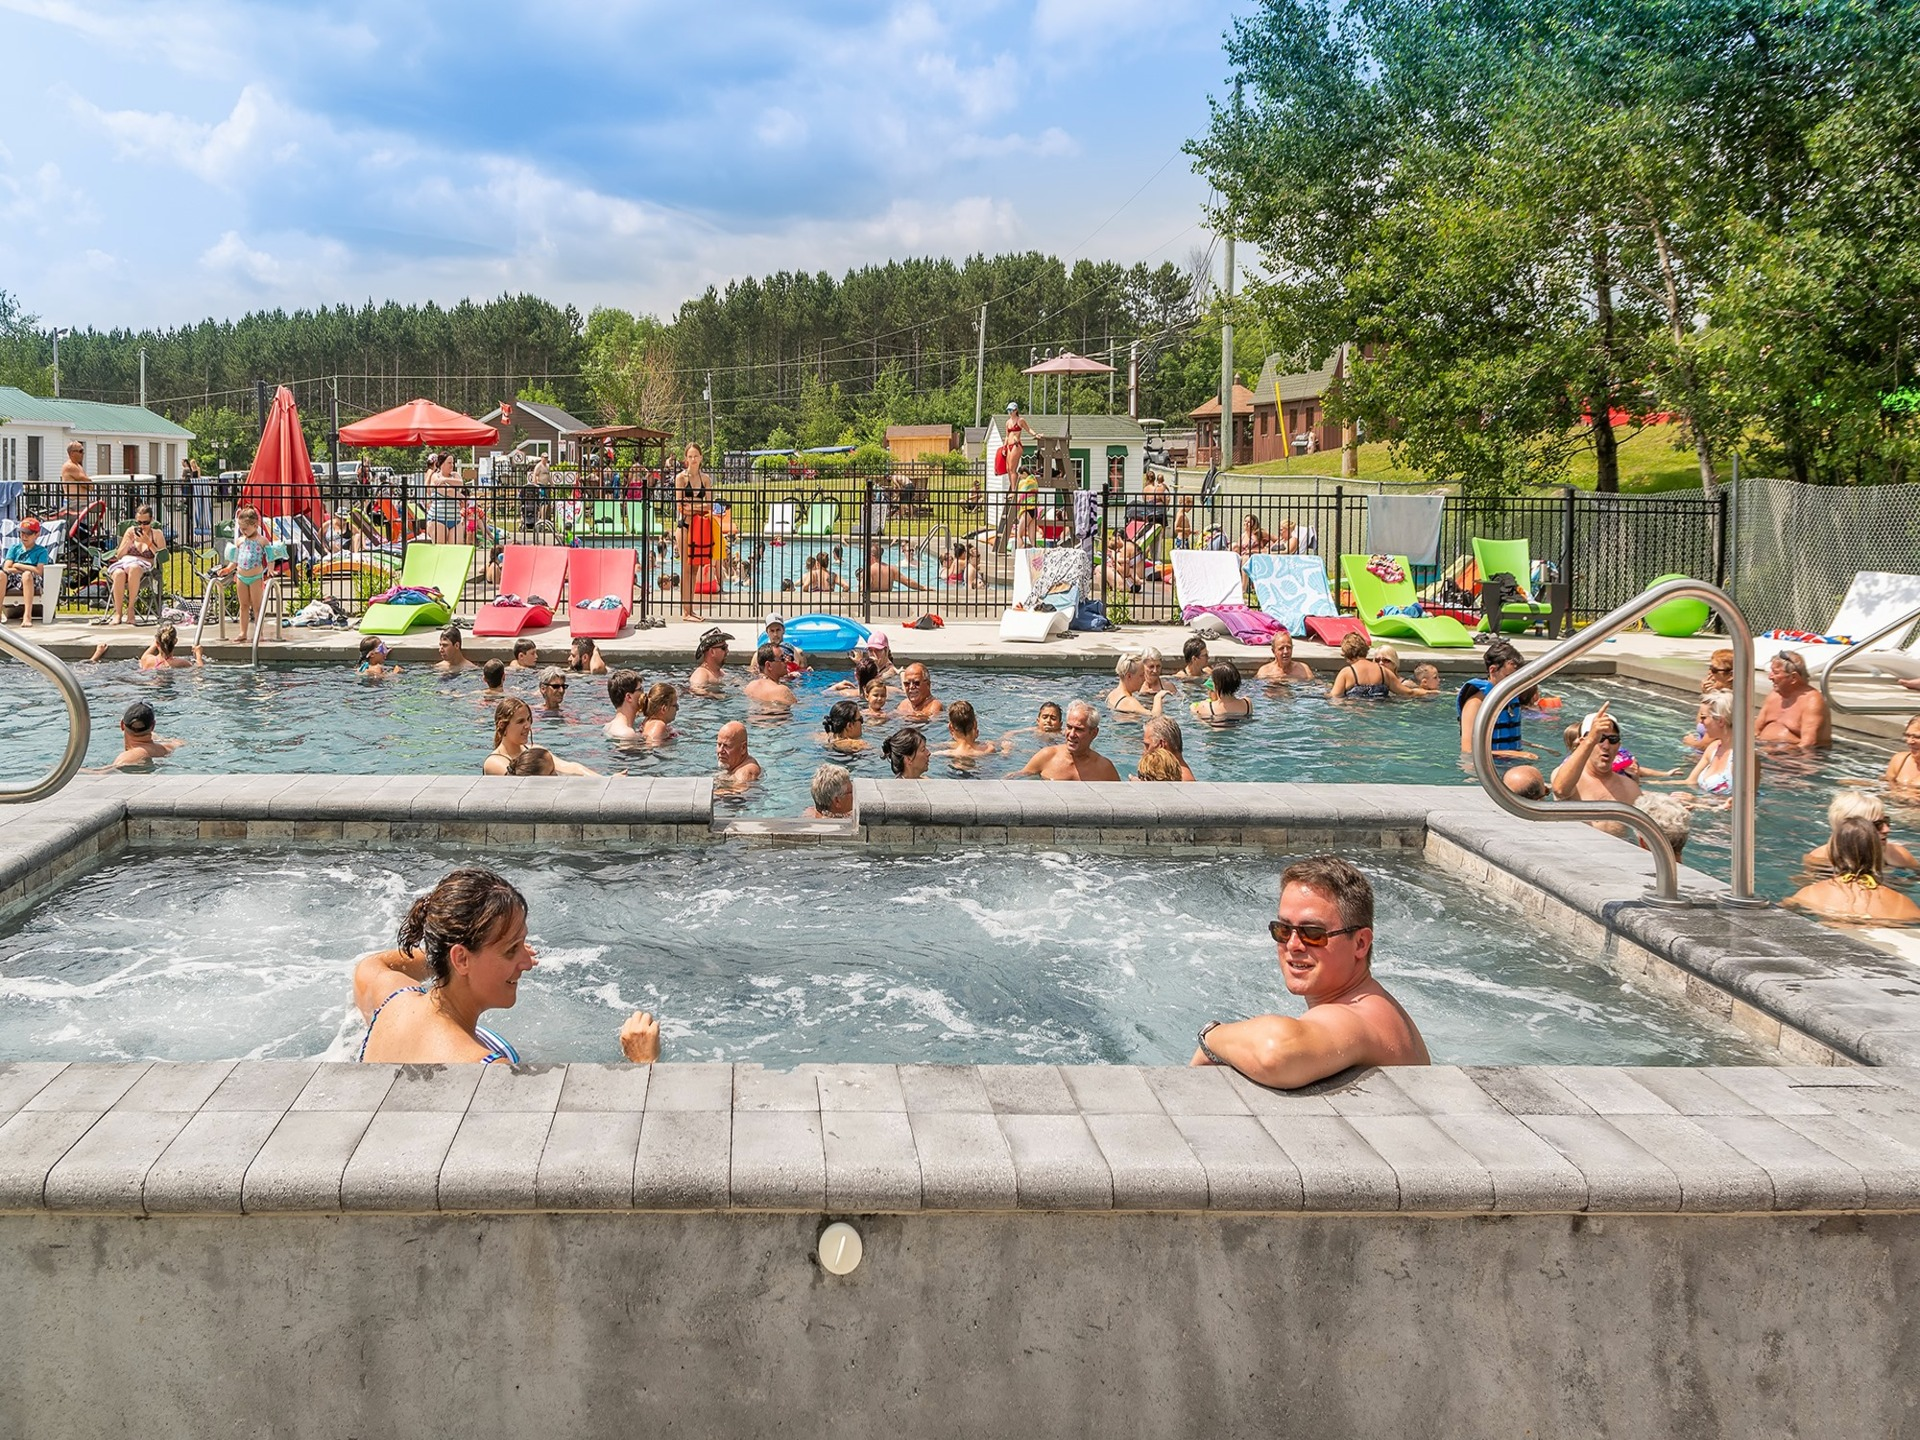 Piscines Es & Spas camping magog-orford   campgrounds orford   lodging